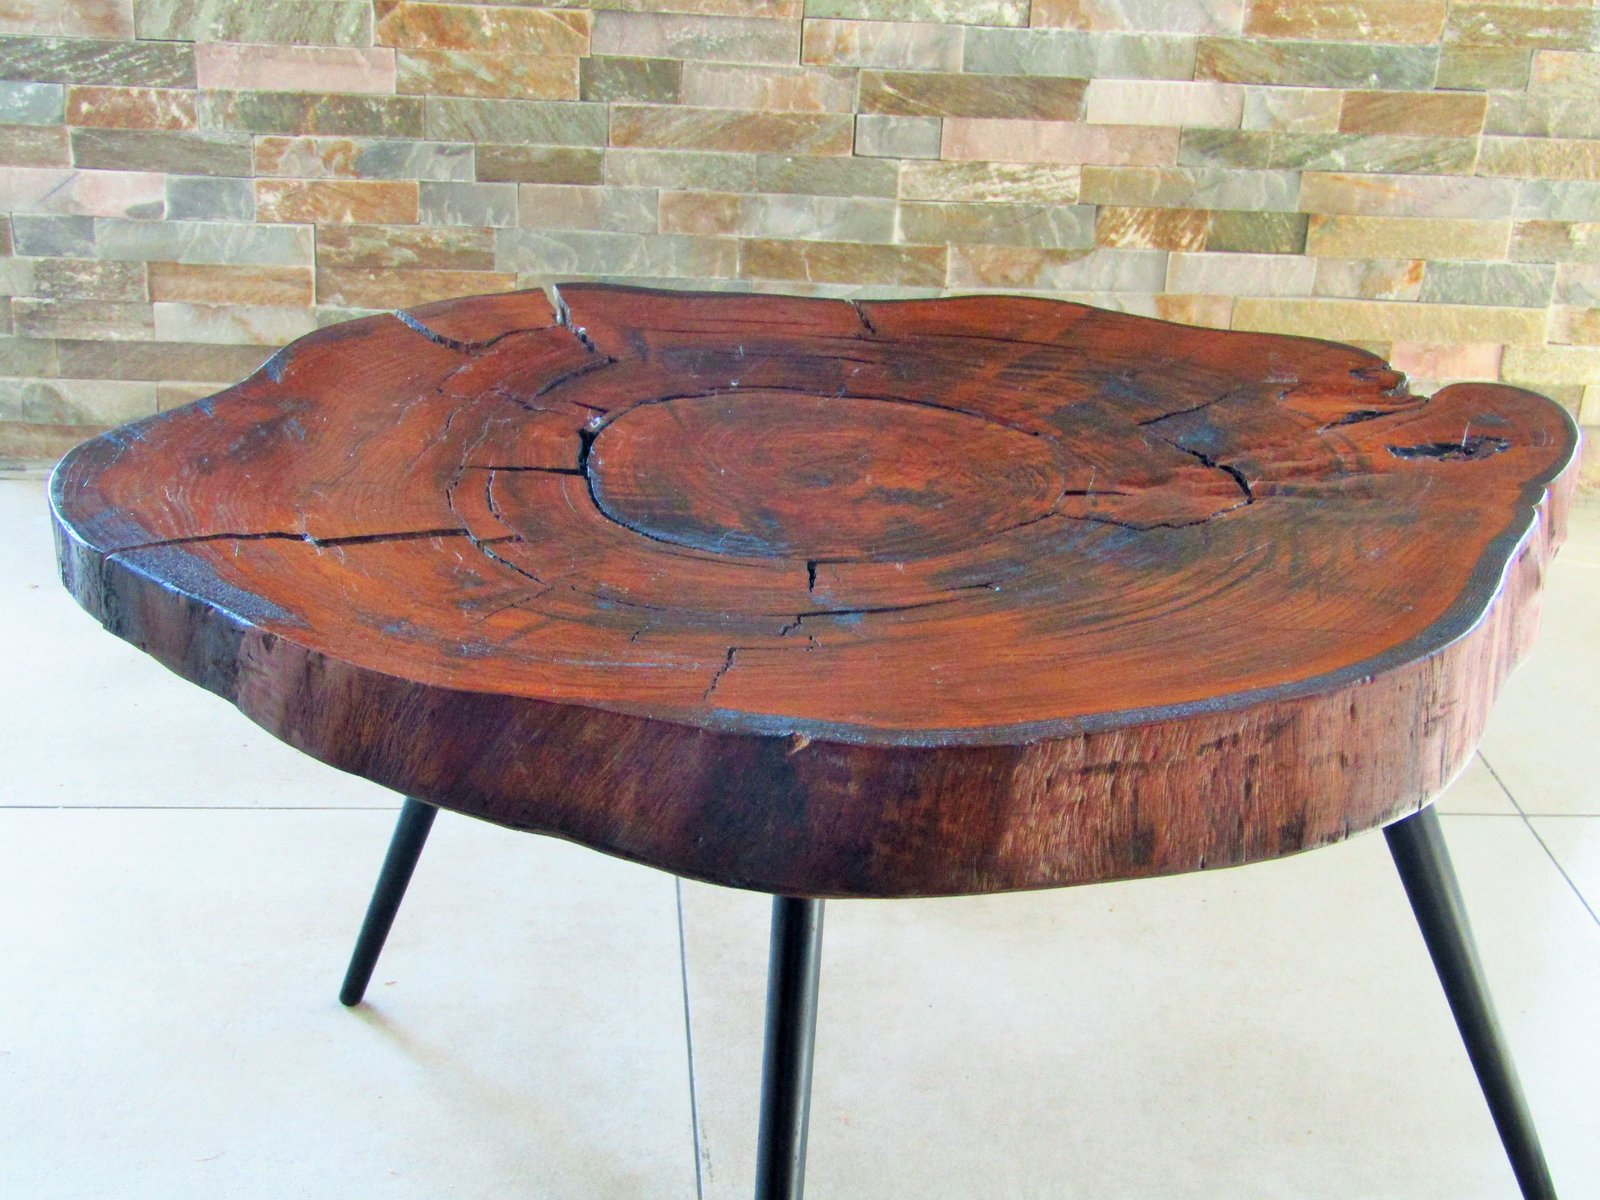 Tree trunk coffee table 1950s 12 1864 00 price per piece